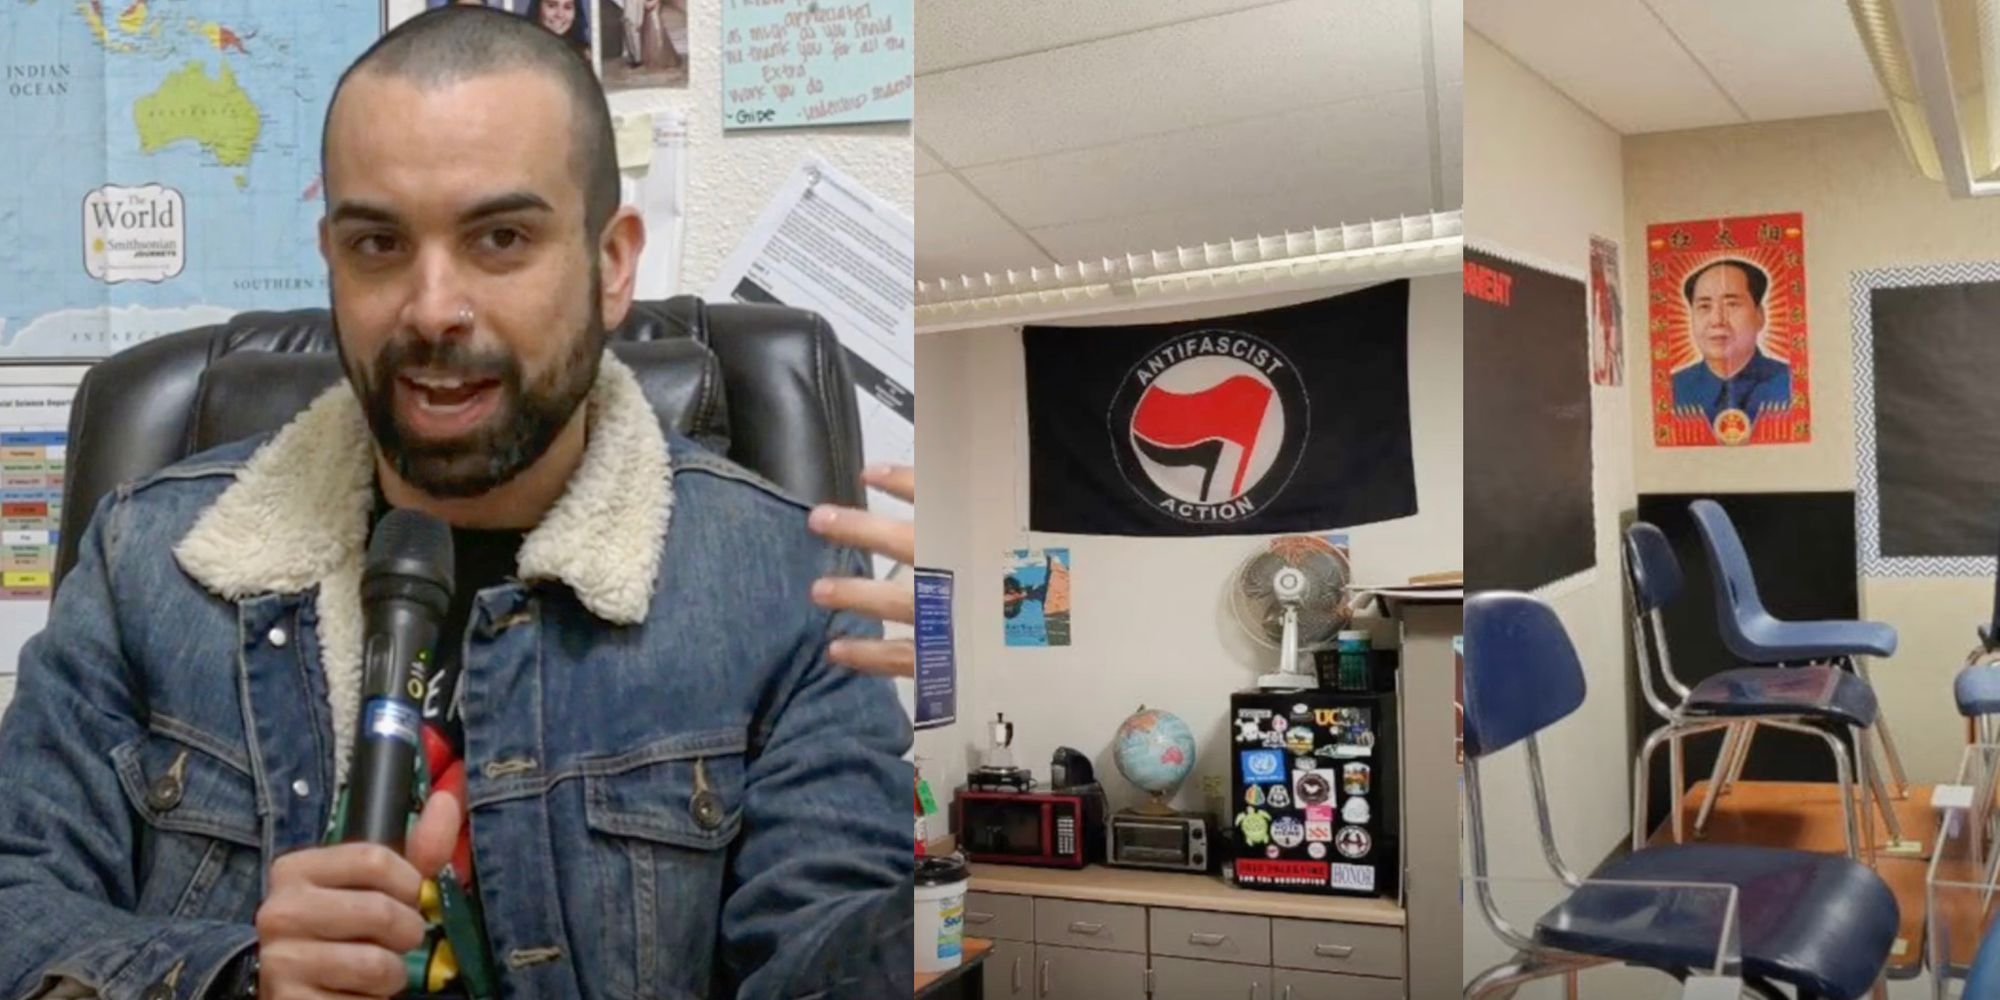 Shocking undercover video reveals Antifa high school teacher admitting to indoctrinating students